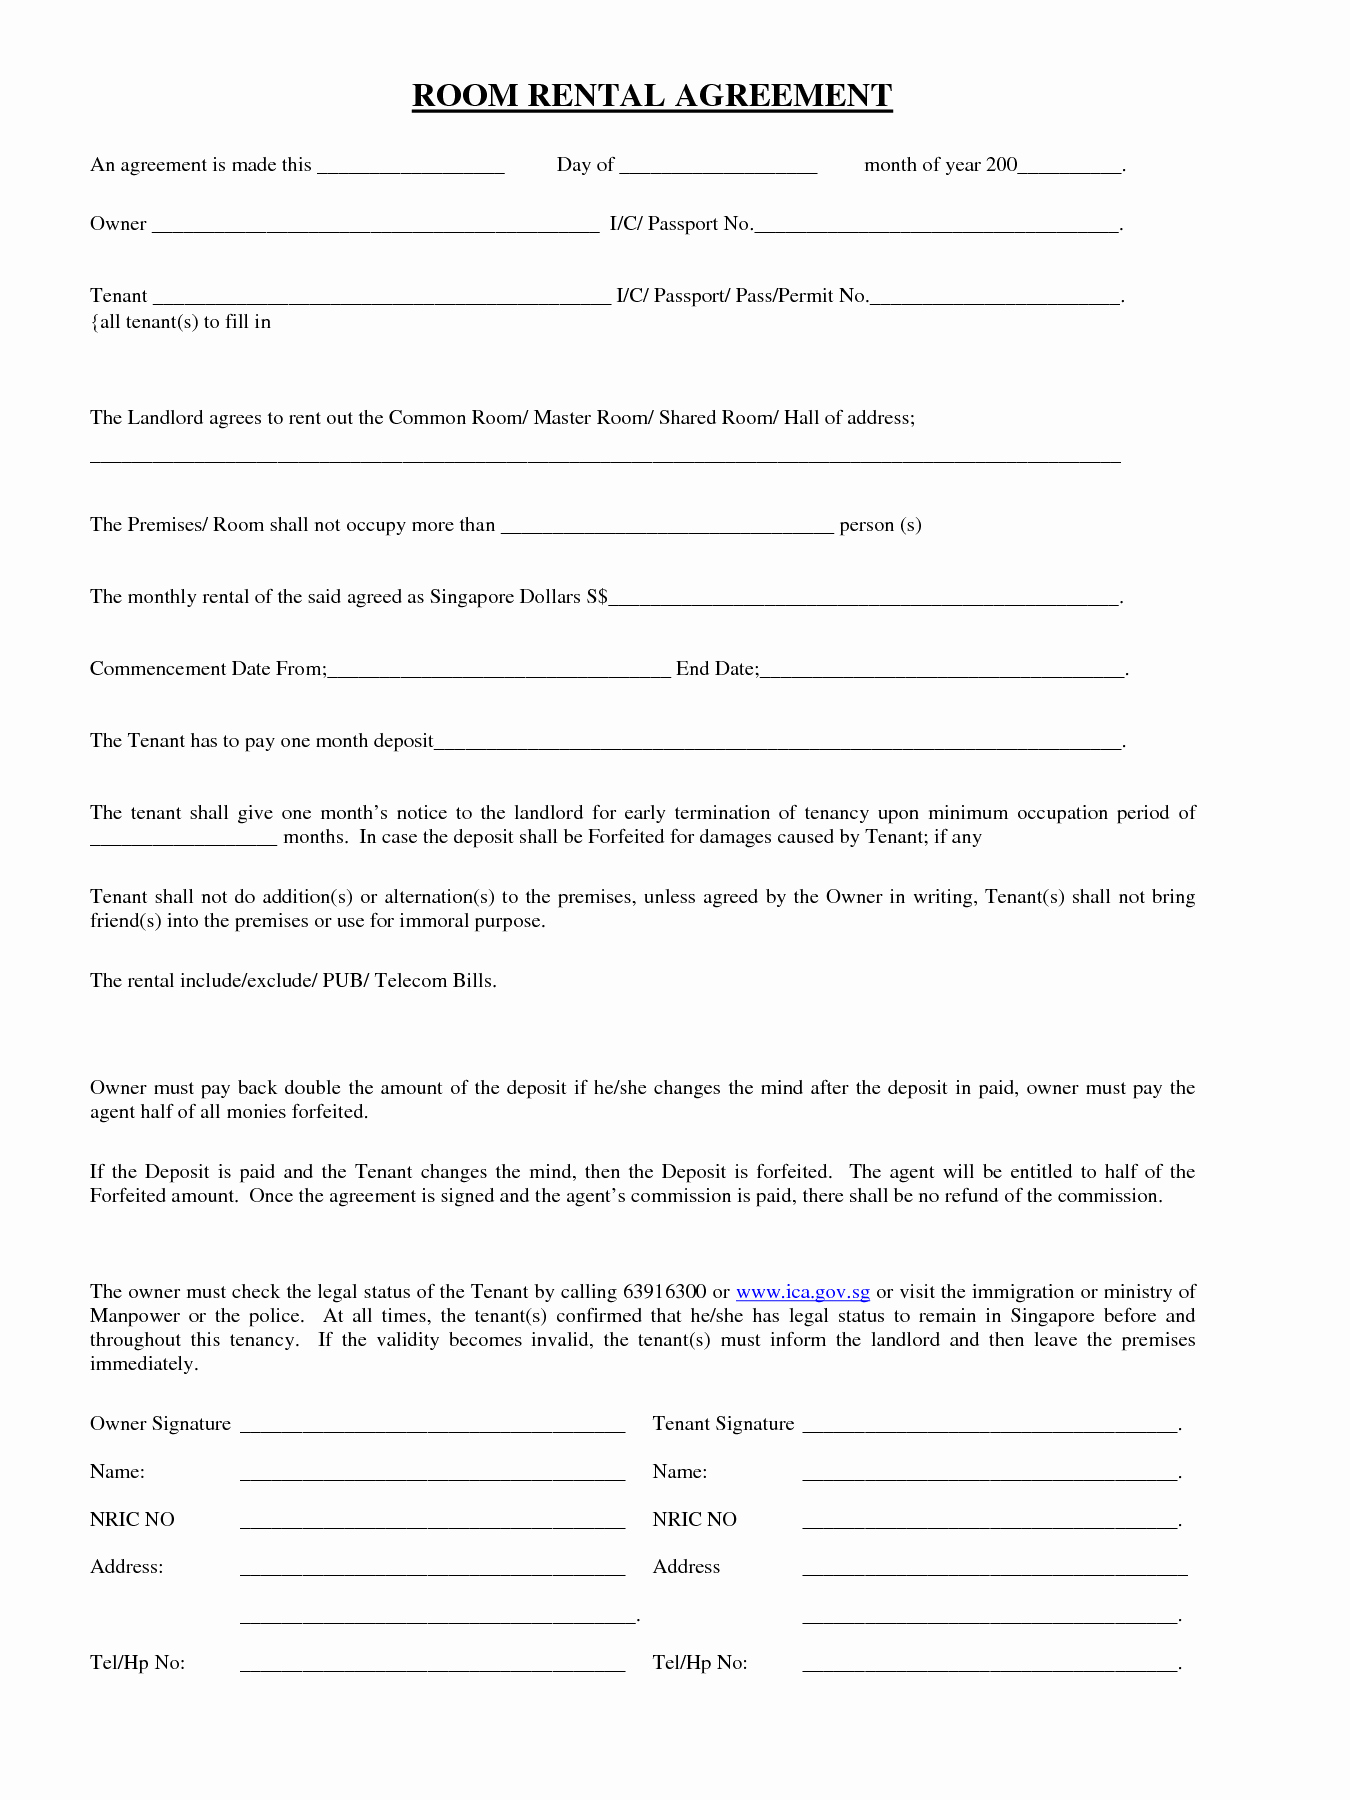 Free Room Rental Agreement Template Unique Pin by Vanessa Melendez On Vanessa In 2019